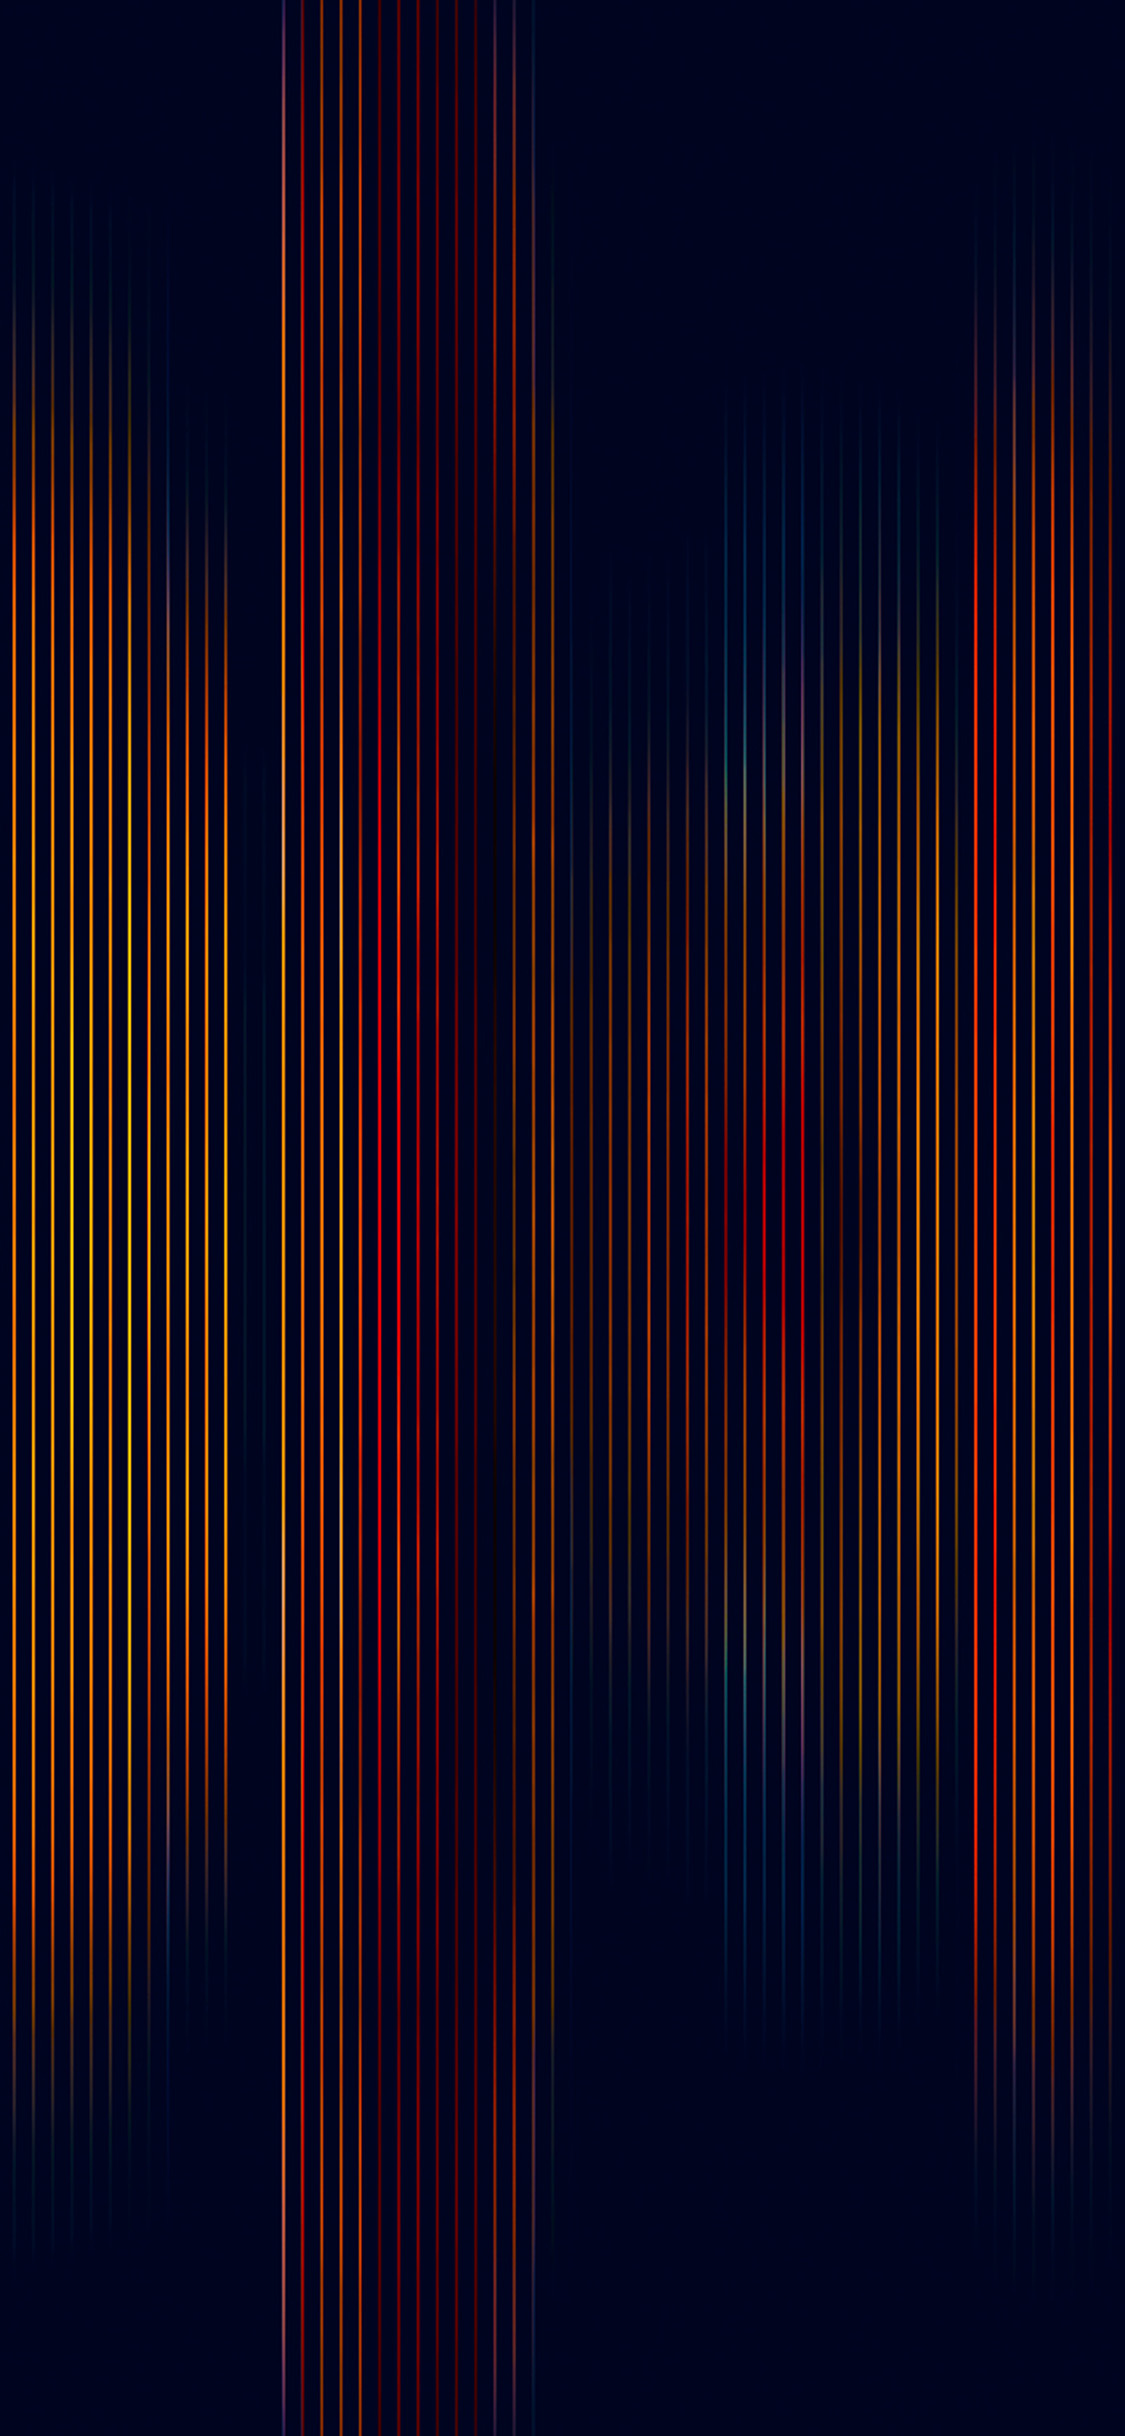 iPhonexpapers.com-Apple-iPhone-wallpaper-vy87-line-art-dark-city-pattern-background